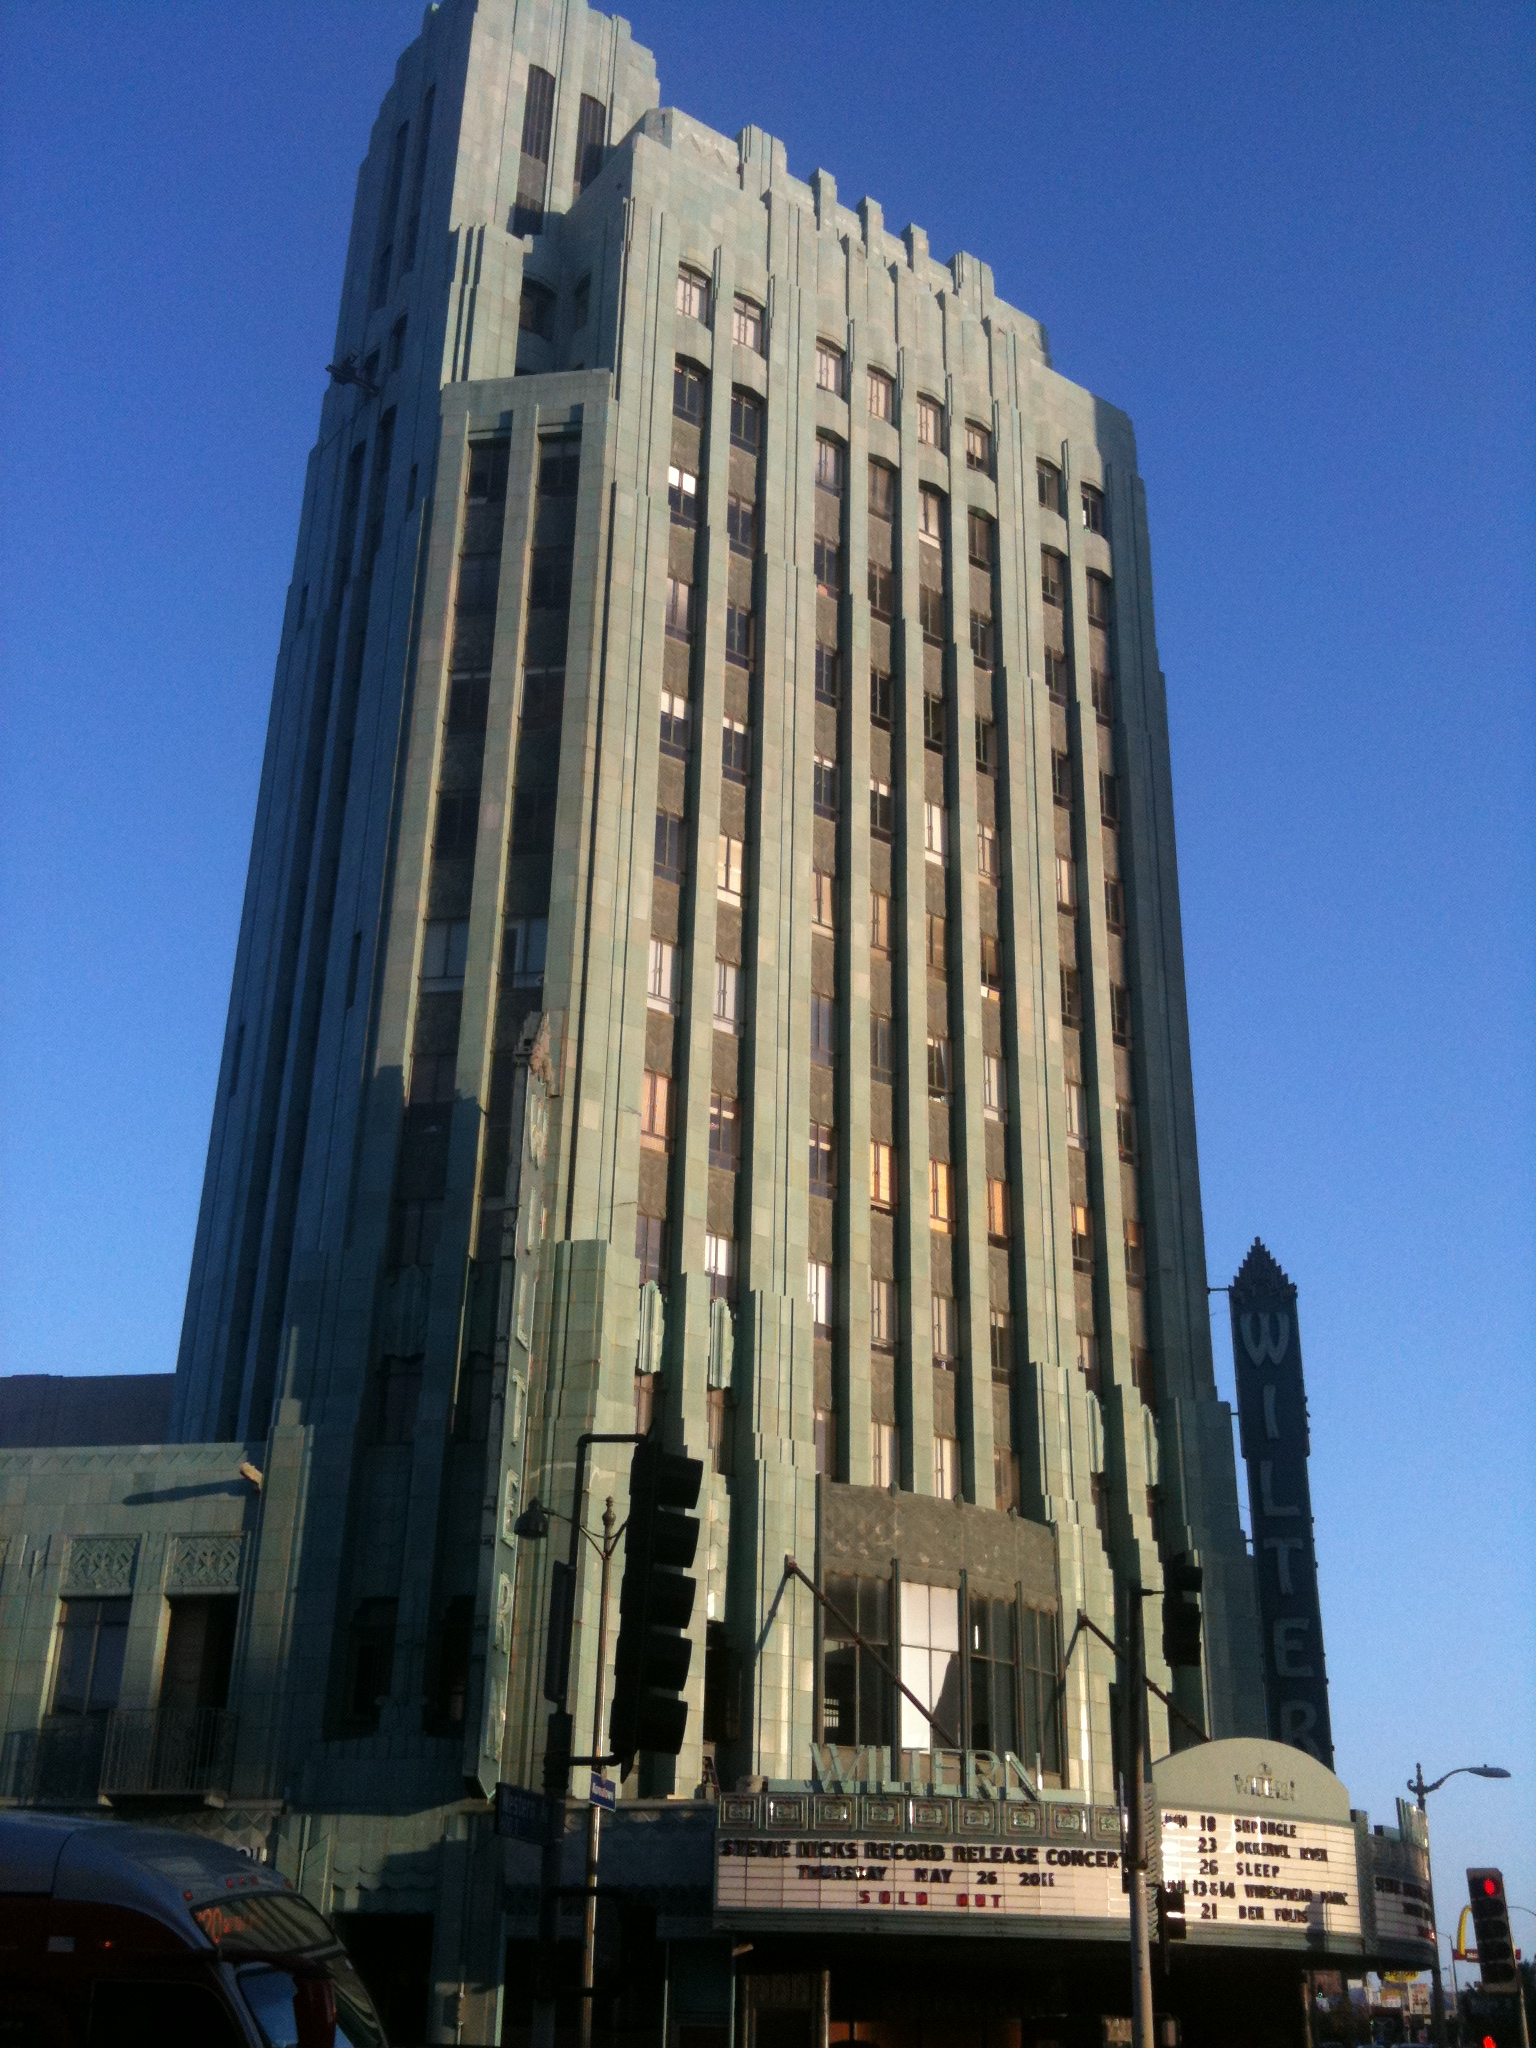 Wiltern Theater at the Wilshire/Western Station Entrance